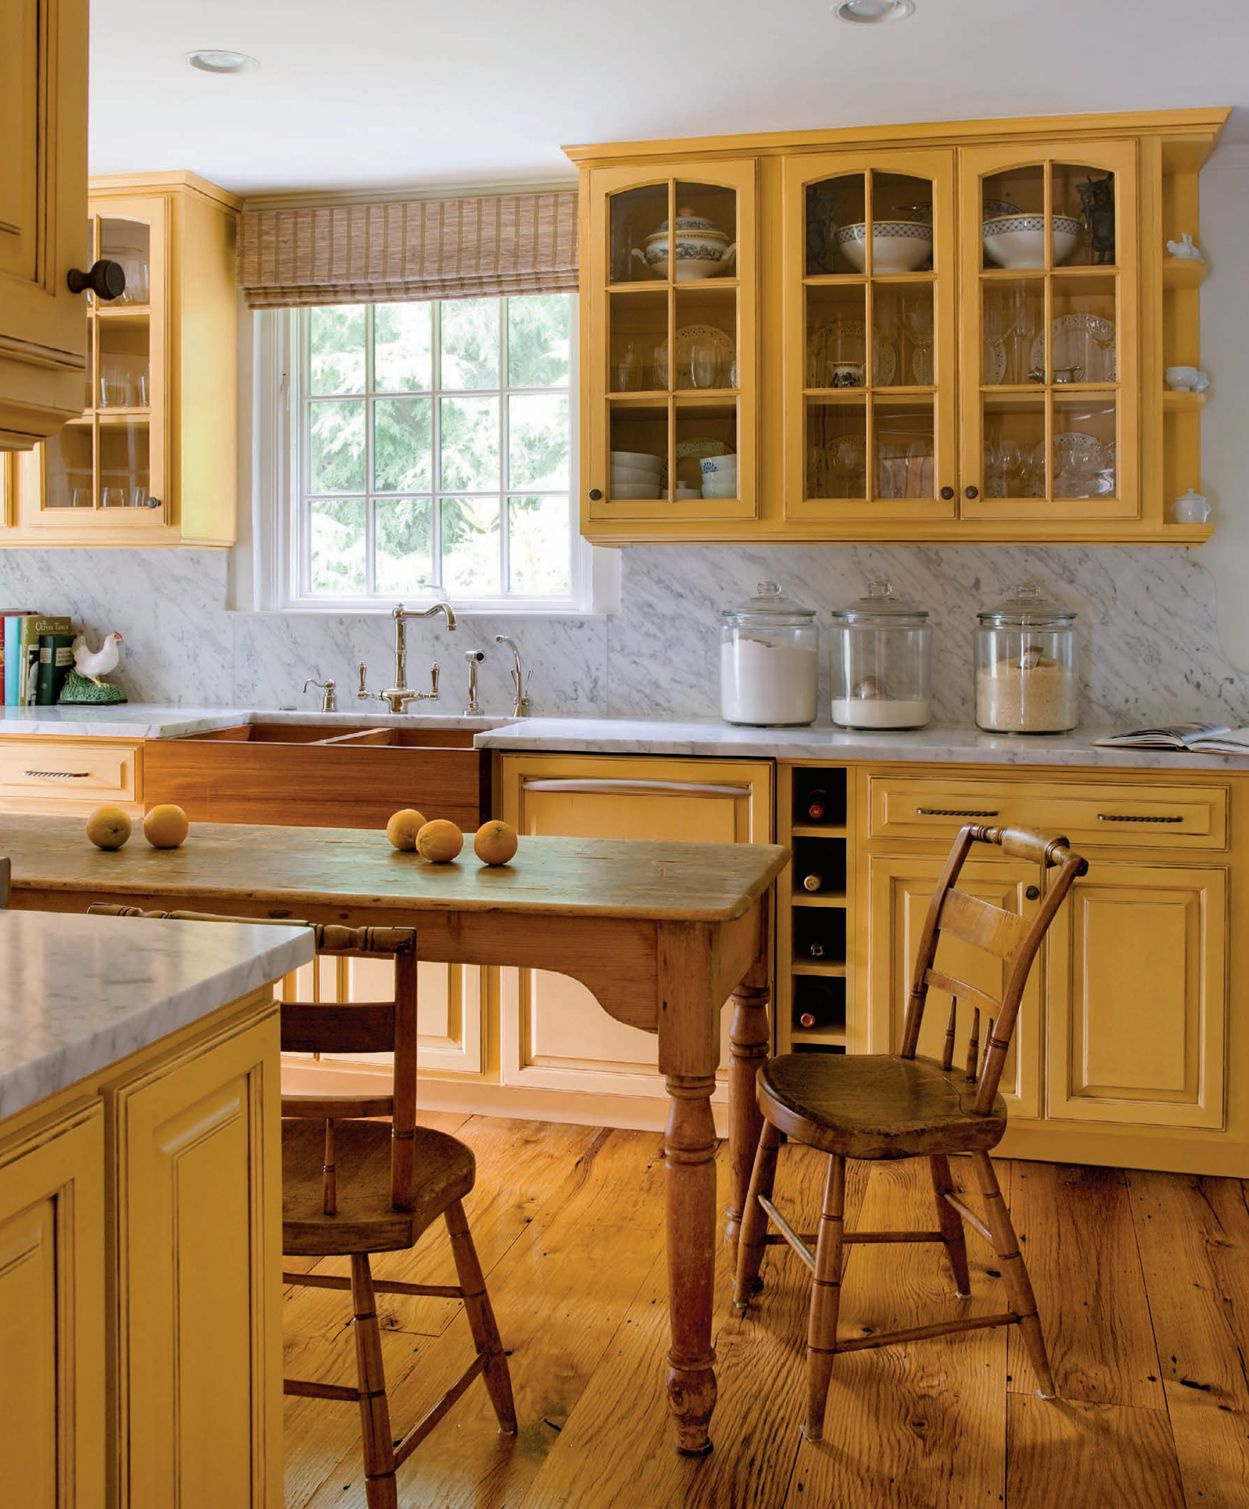 Pale Yellow Country Kitchen: Yellow Kitchen Cabinets, Country